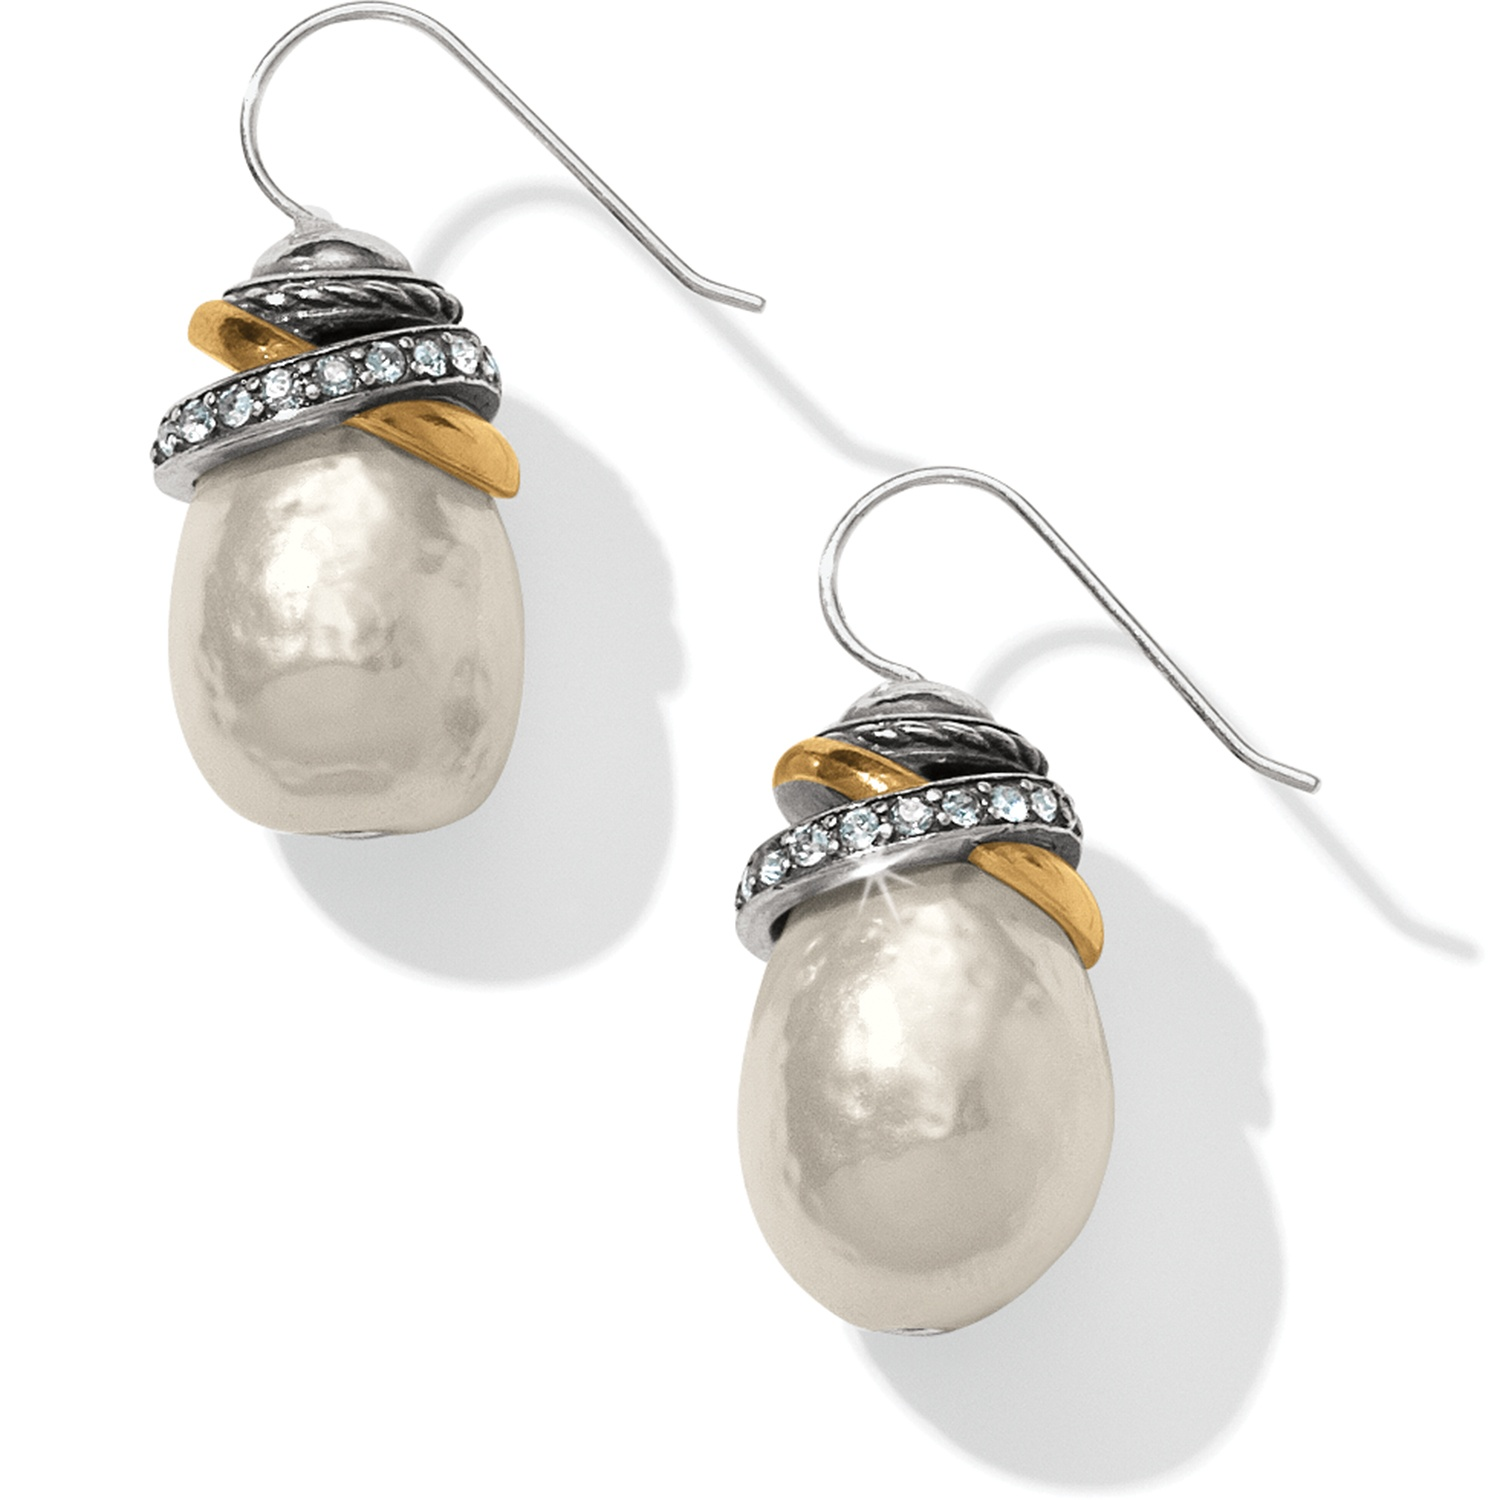 jewelry earrings pearls gifts pearl giant by pacific events